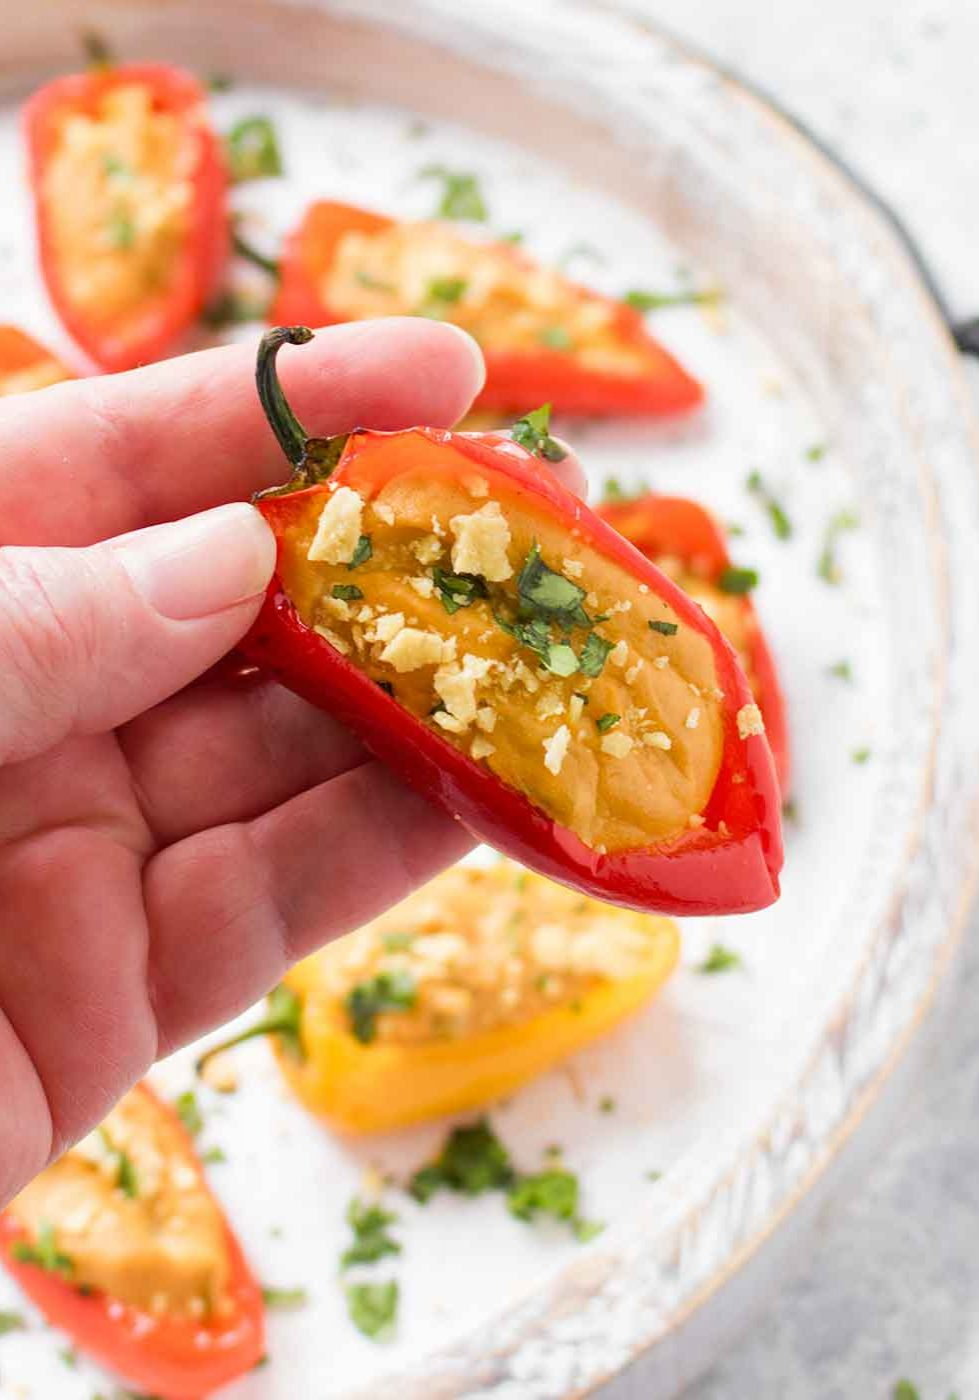 vegan-queso-stuffed-mini-peppers-1882-0418